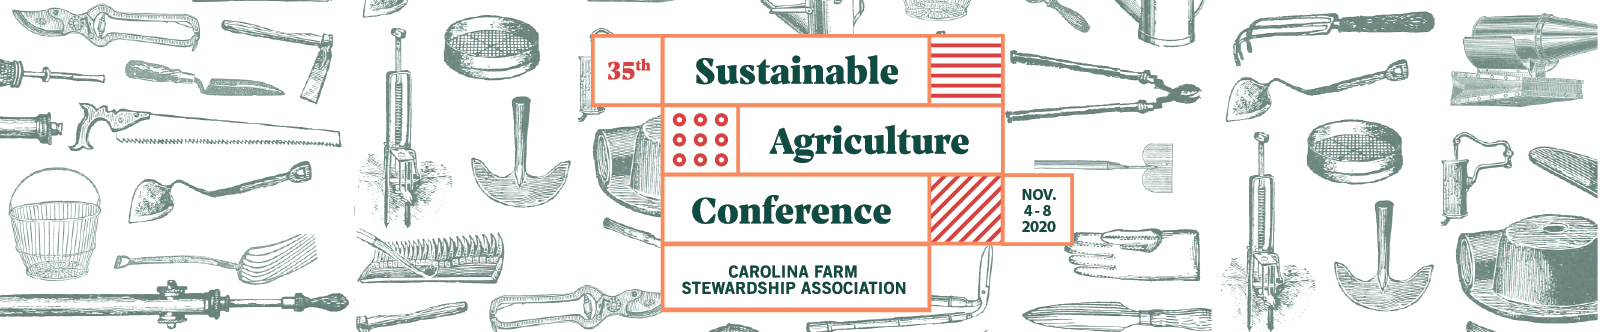 2020 Sustainable Agriculture Conference banner